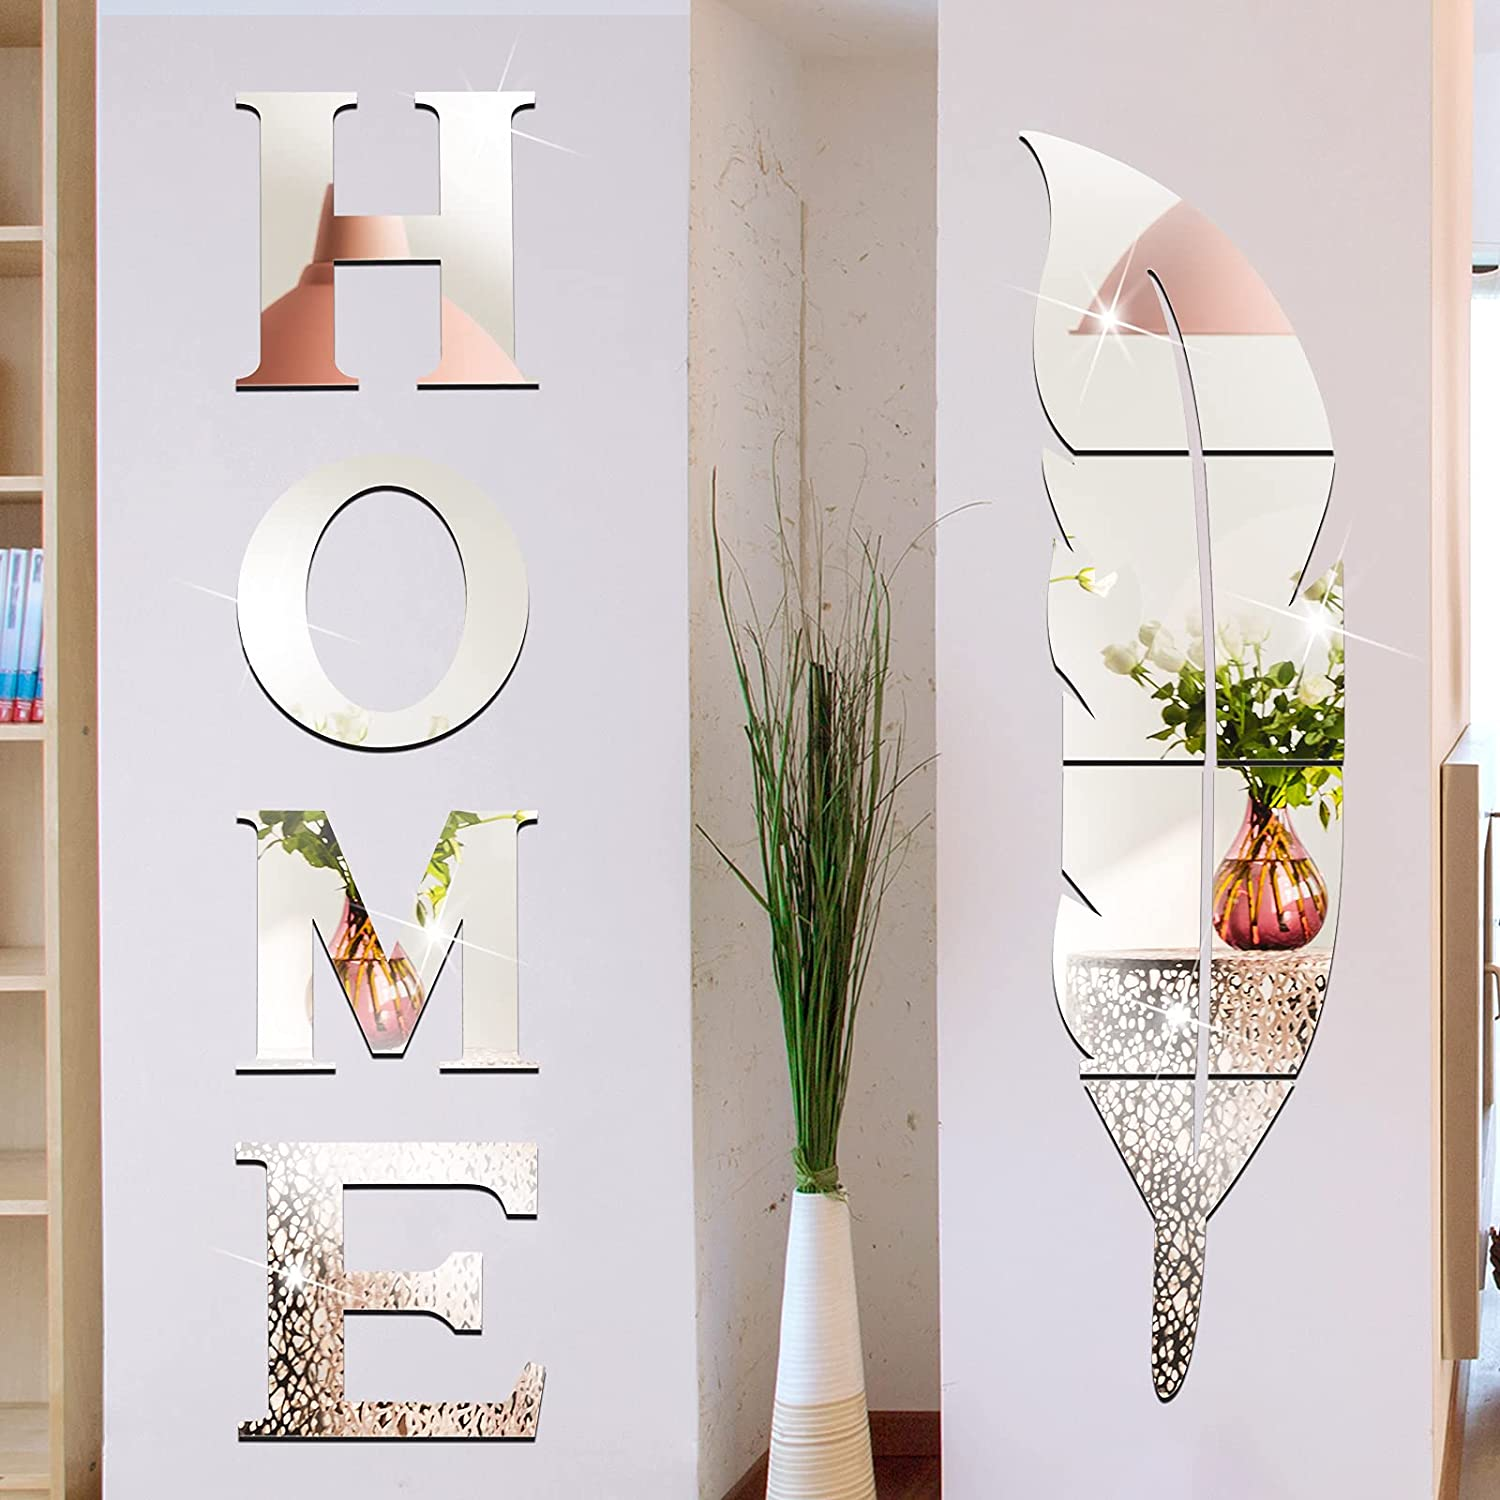 10 Pieces Home Letter Mirror Stickers Acrylic Mirror Wall Stickers Home Logo Letters Warm Decoration Removable Feather 3D Self-Adhesive Wall Stickers for Living Room Bedroom Kitchen Wall Doors Windows